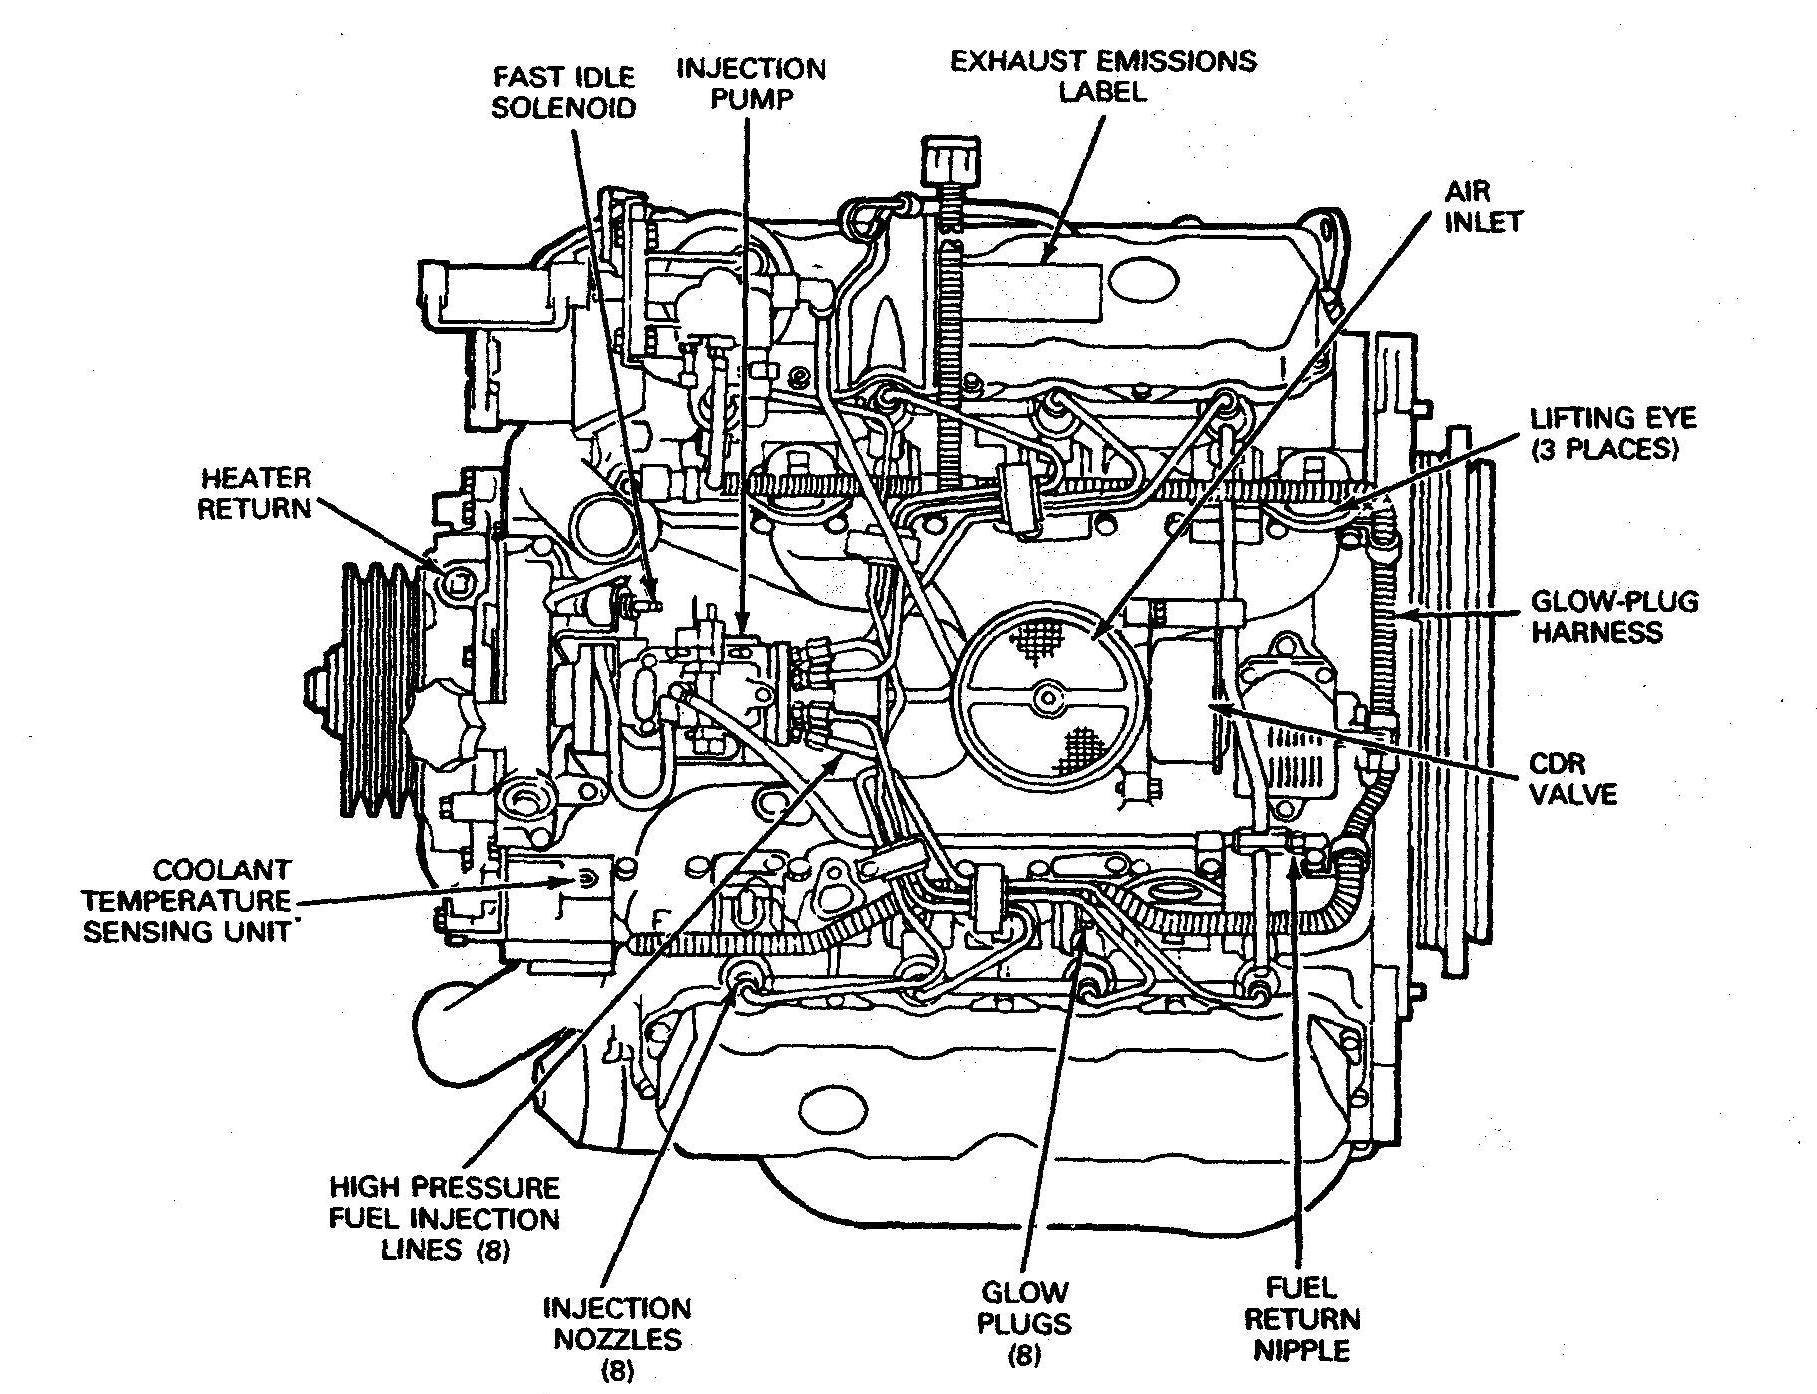 1998 ford Mustang Engine Diagram ford V6 3 7 Engine Diagram ford Wiring Diagrams Instructions Of 1998 ford Mustang Engine Diagram